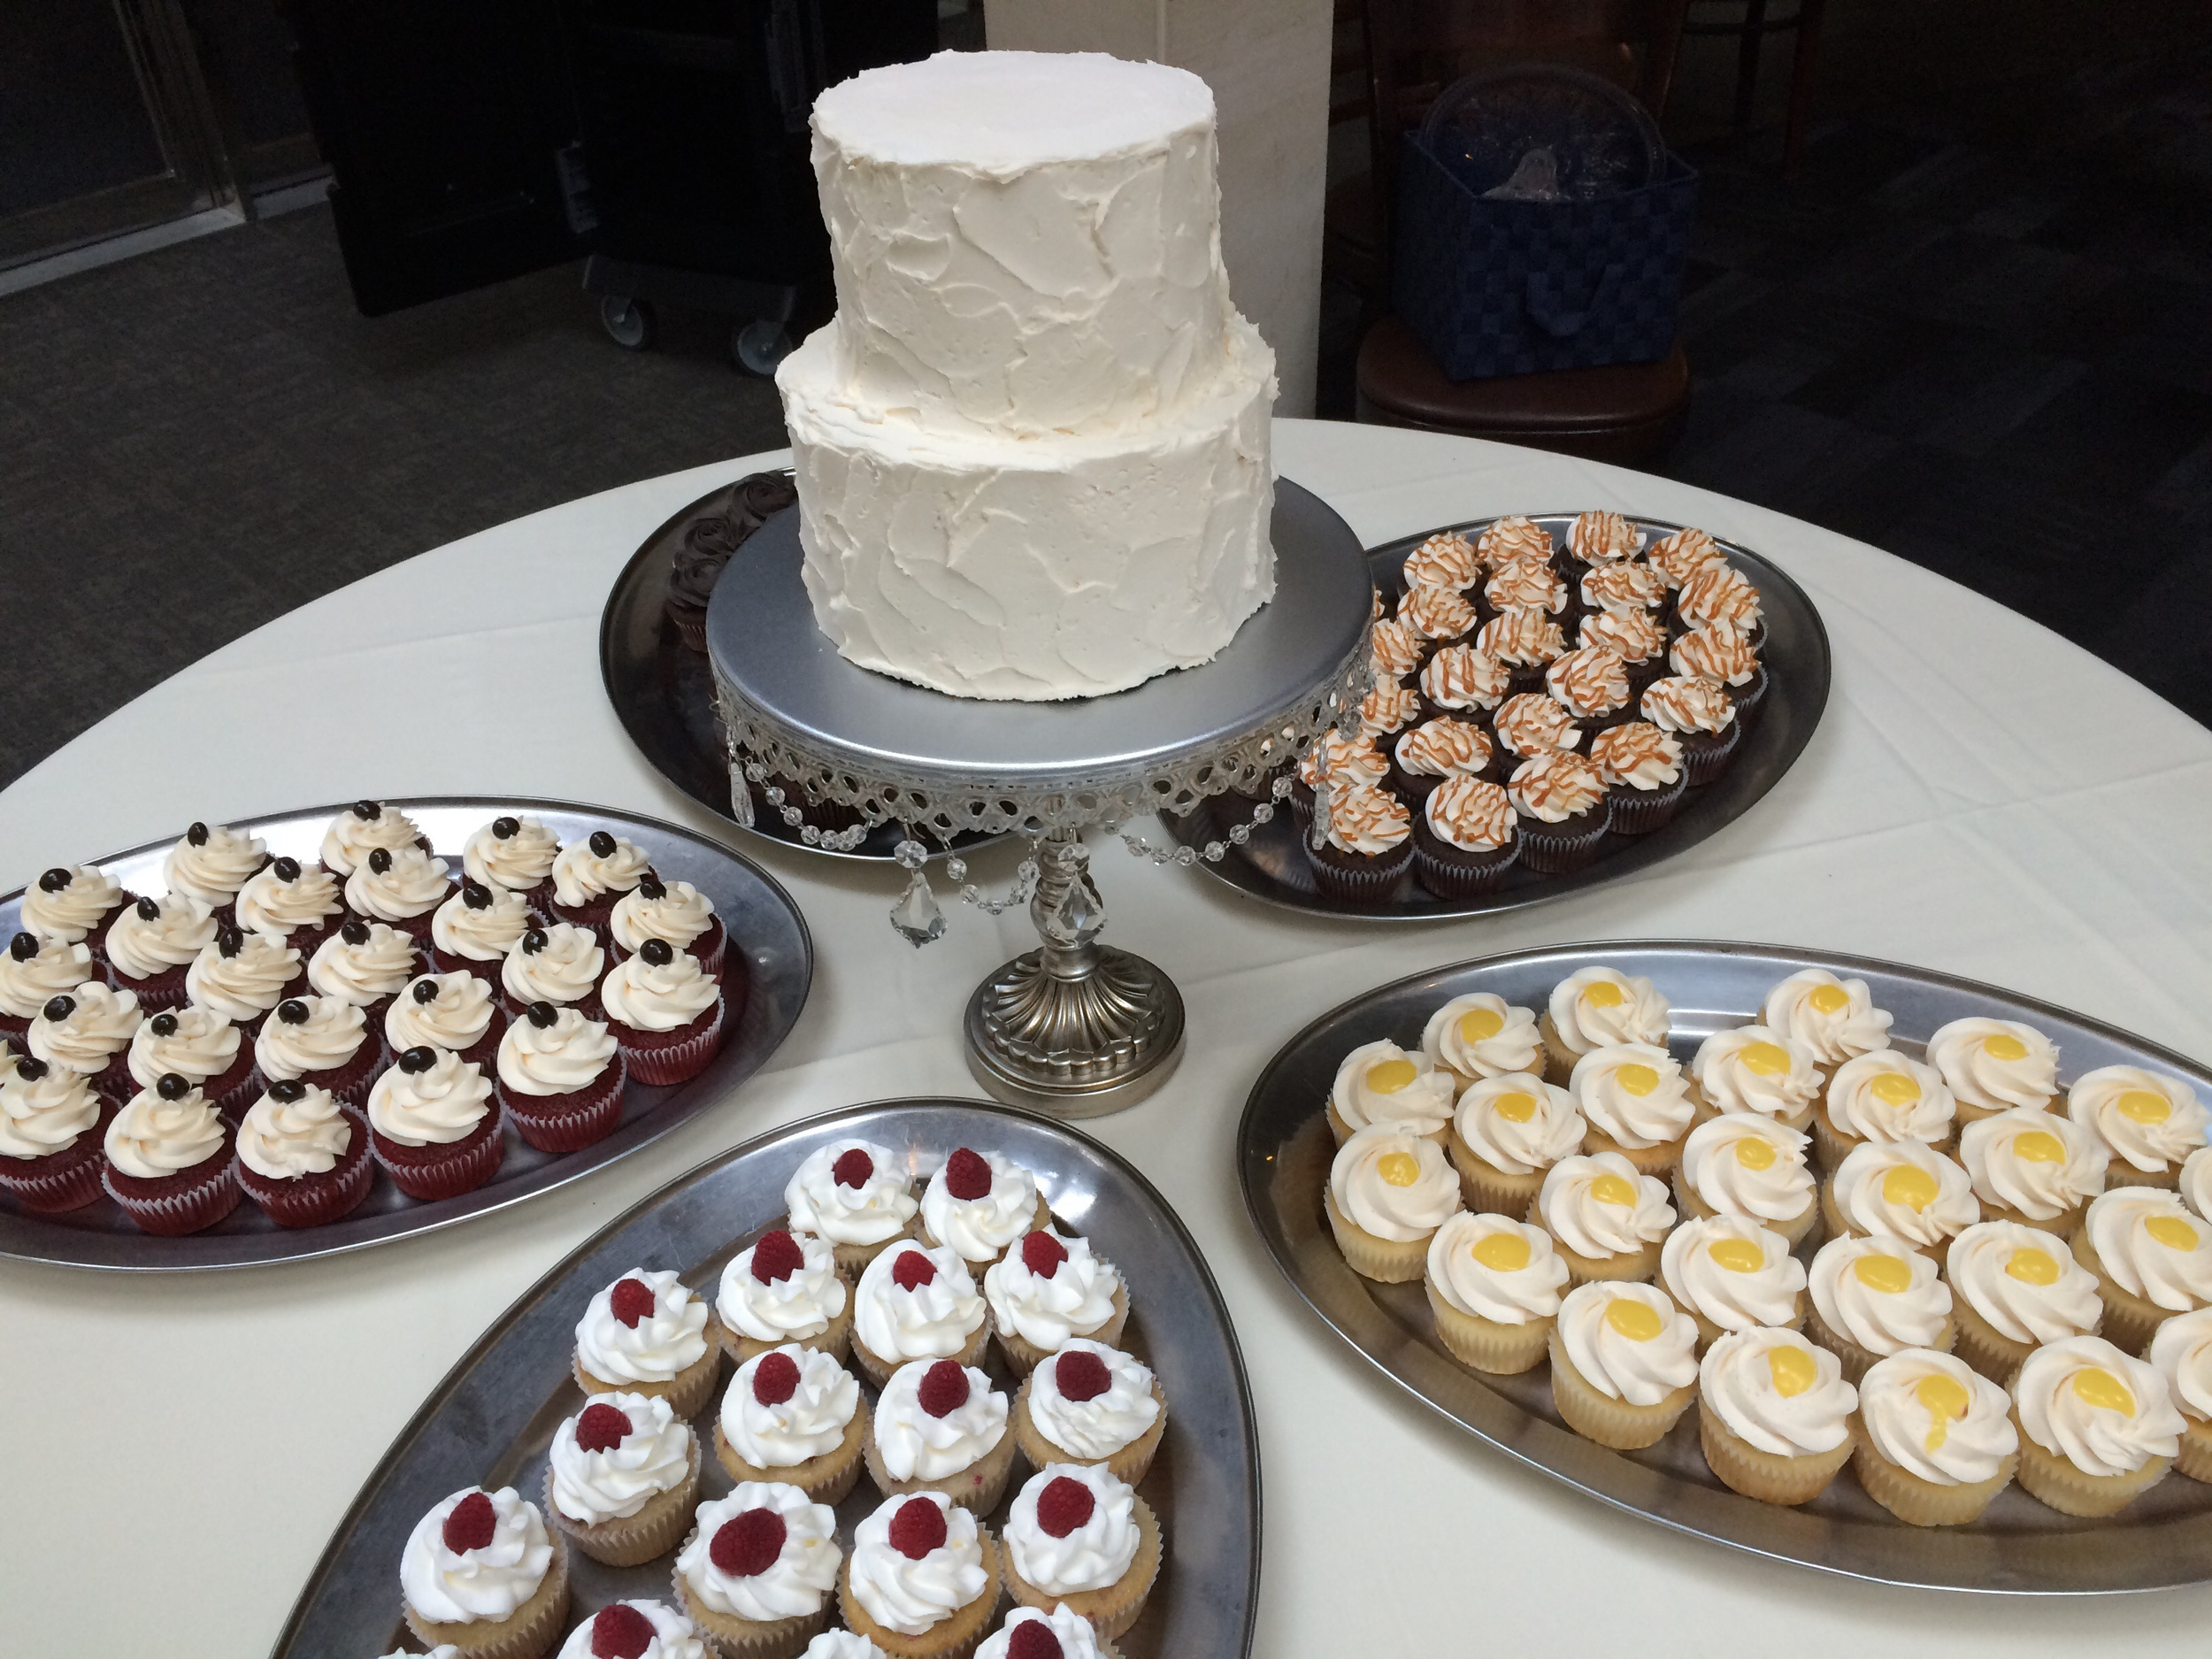 Wedding cakes, top tier is lemon and bottom tier is salted caramel, surrounded by various cupcake flavors